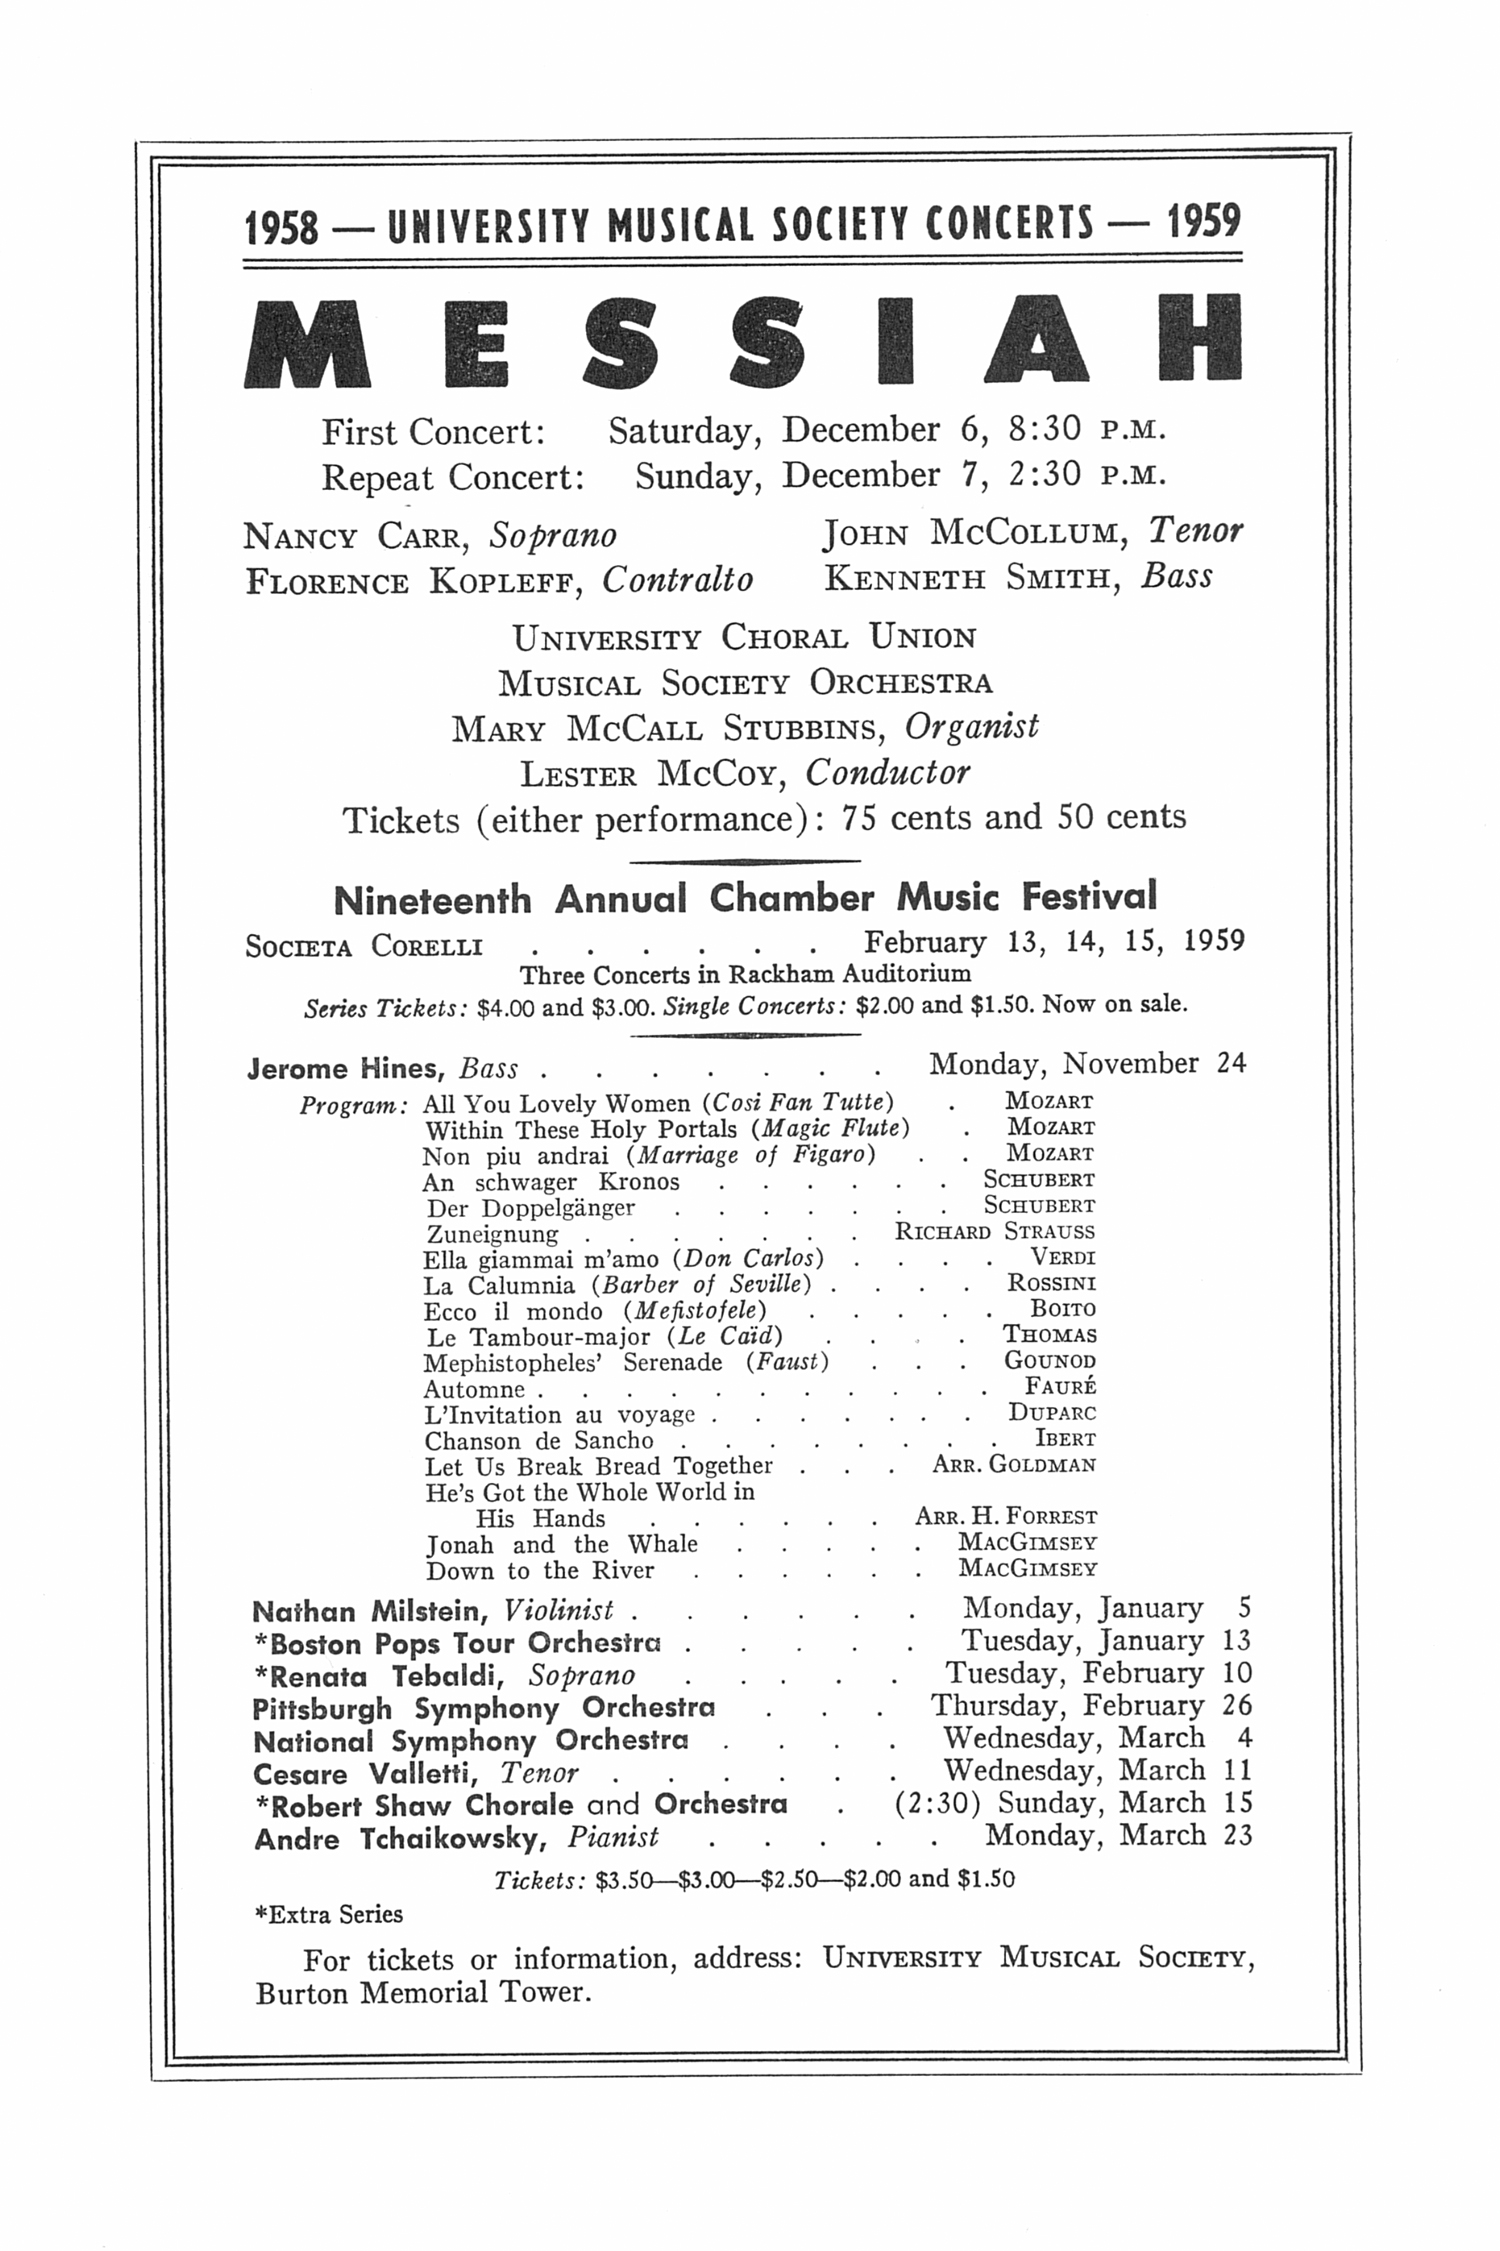 UMS Concert Program, November 11, 1958: The National Symphony Orchestra Of Mexico --  image